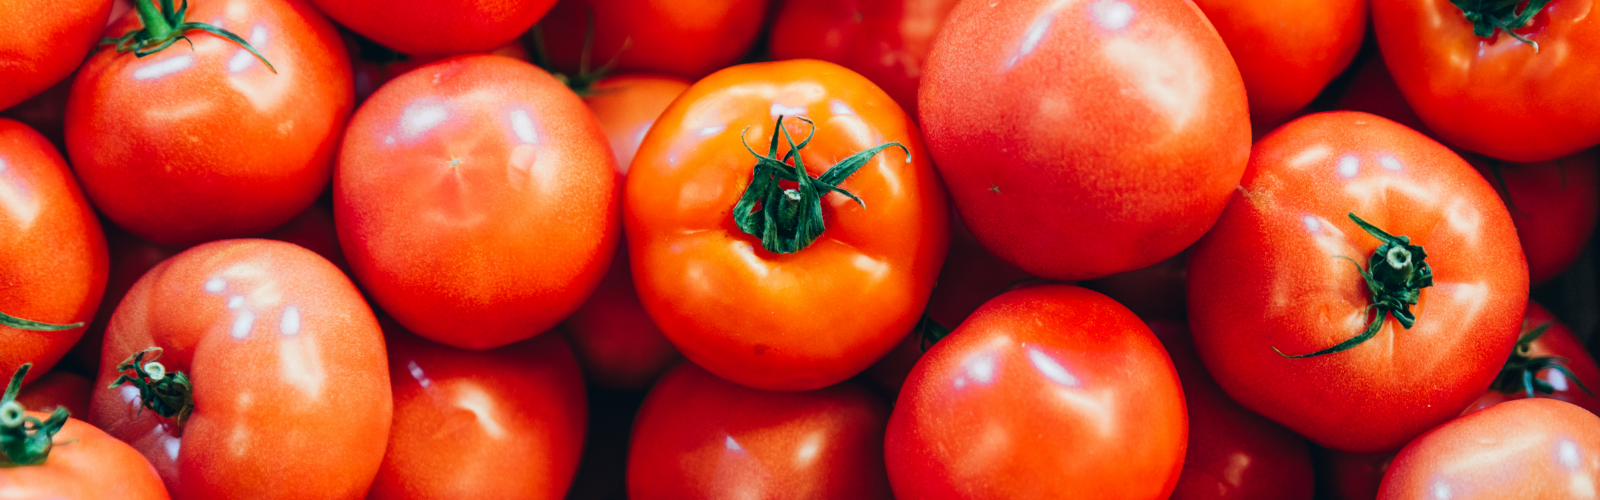 Tomatoes - Fruits to Increase Sperm Count and Motility